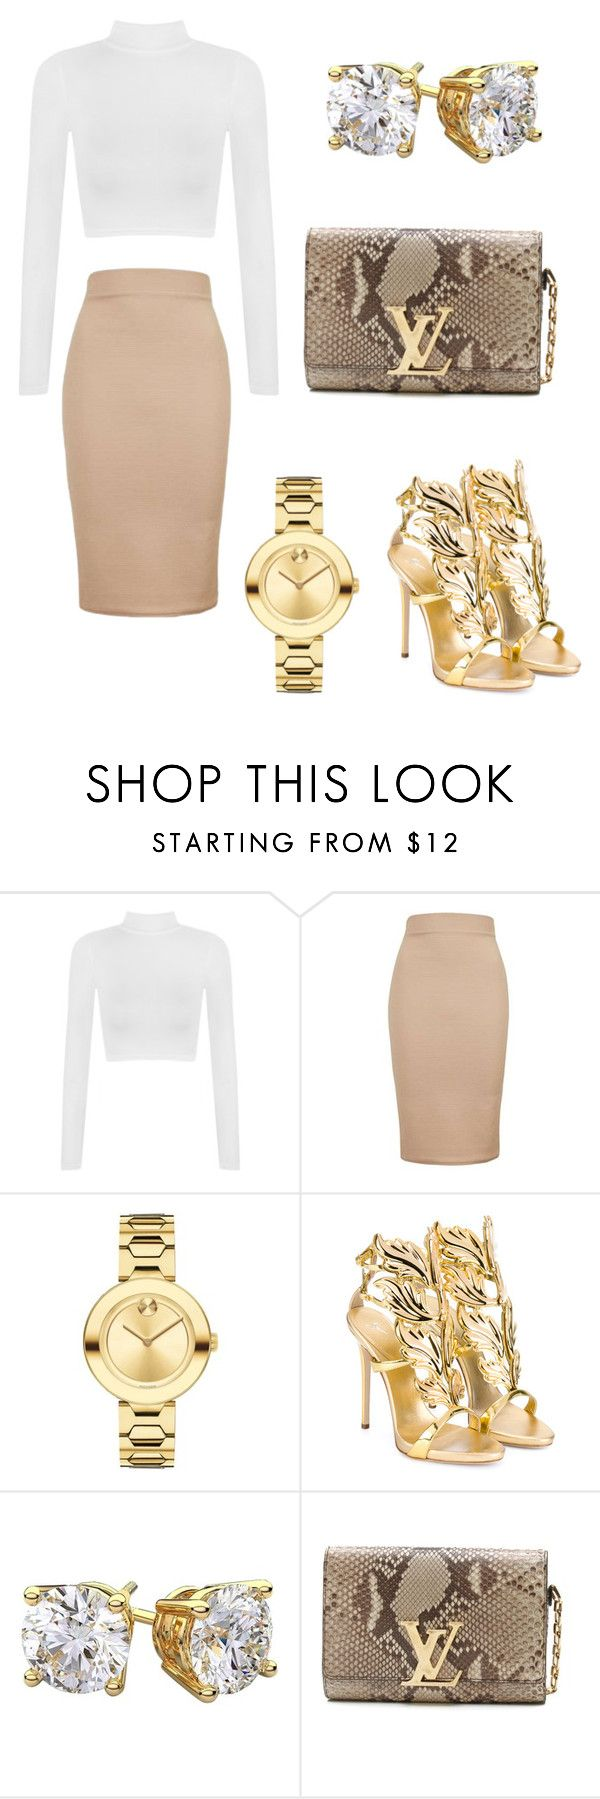 """""""Shila"""" by karon-stylez ❤ liked on Polyvore featuring WearAll, Topshop, Movado, Giuseppe Zanotti and Louis Vuitton"""